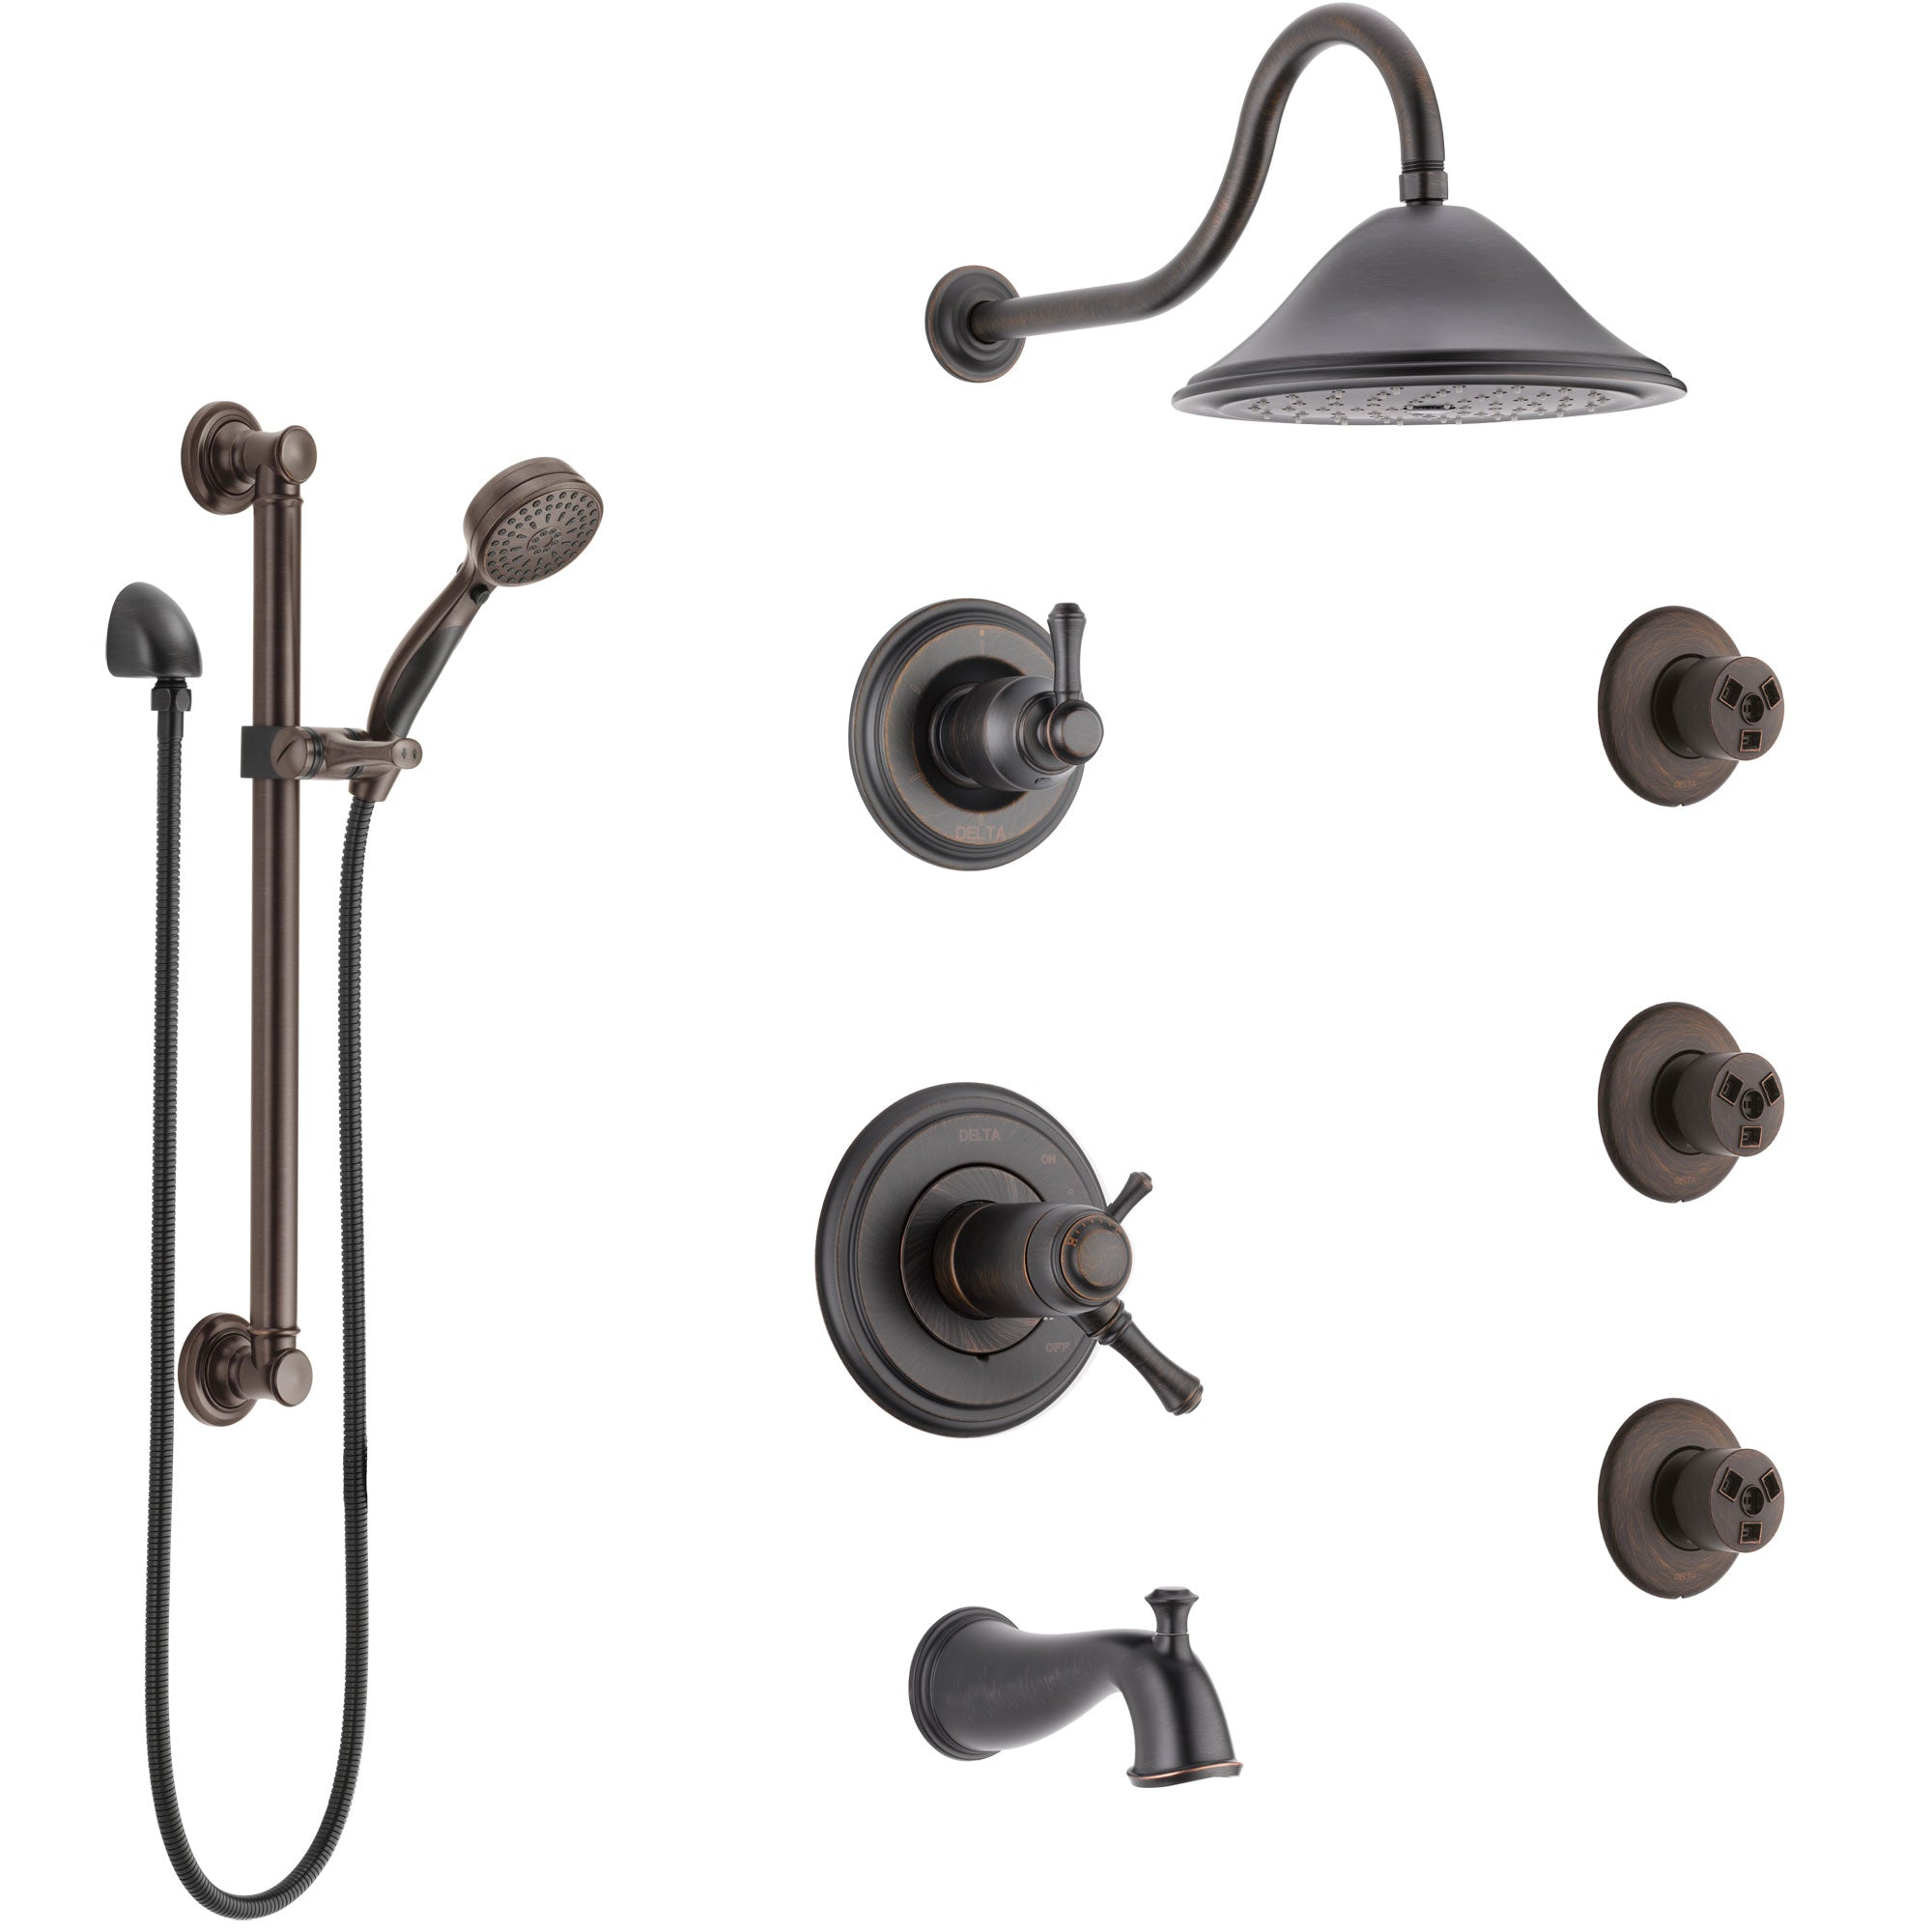 Delta Cassidy Venetian Bronze Dual Thermostatic Control Tub and Shower System, Diverter, Showerhead, 3 Body Sprays, Grab Bar Hand Spray SS17T4971RB2